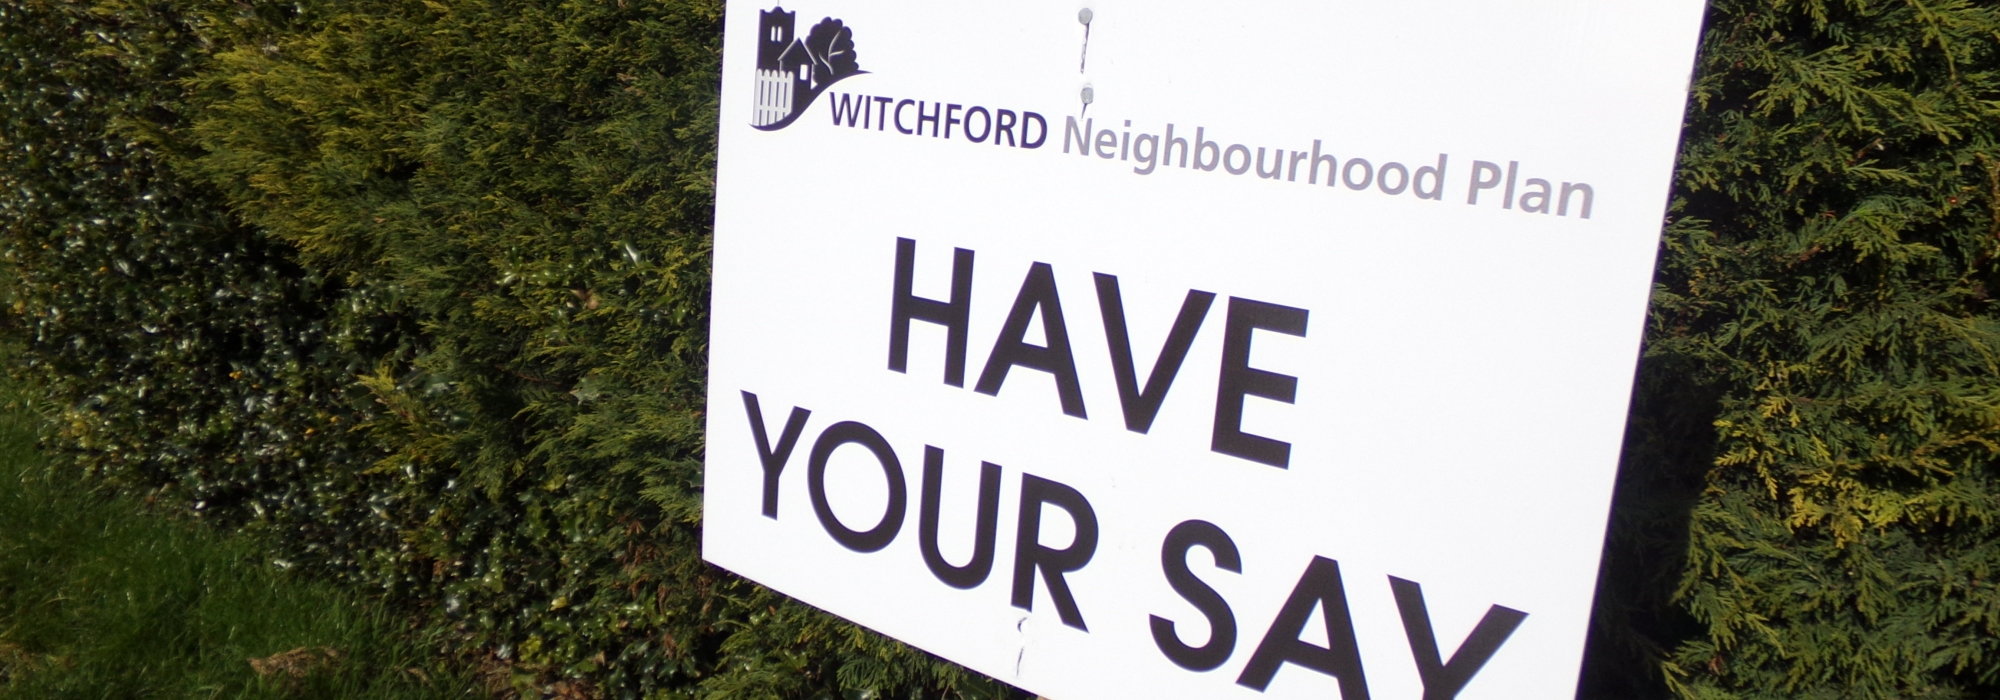 Have your say sign